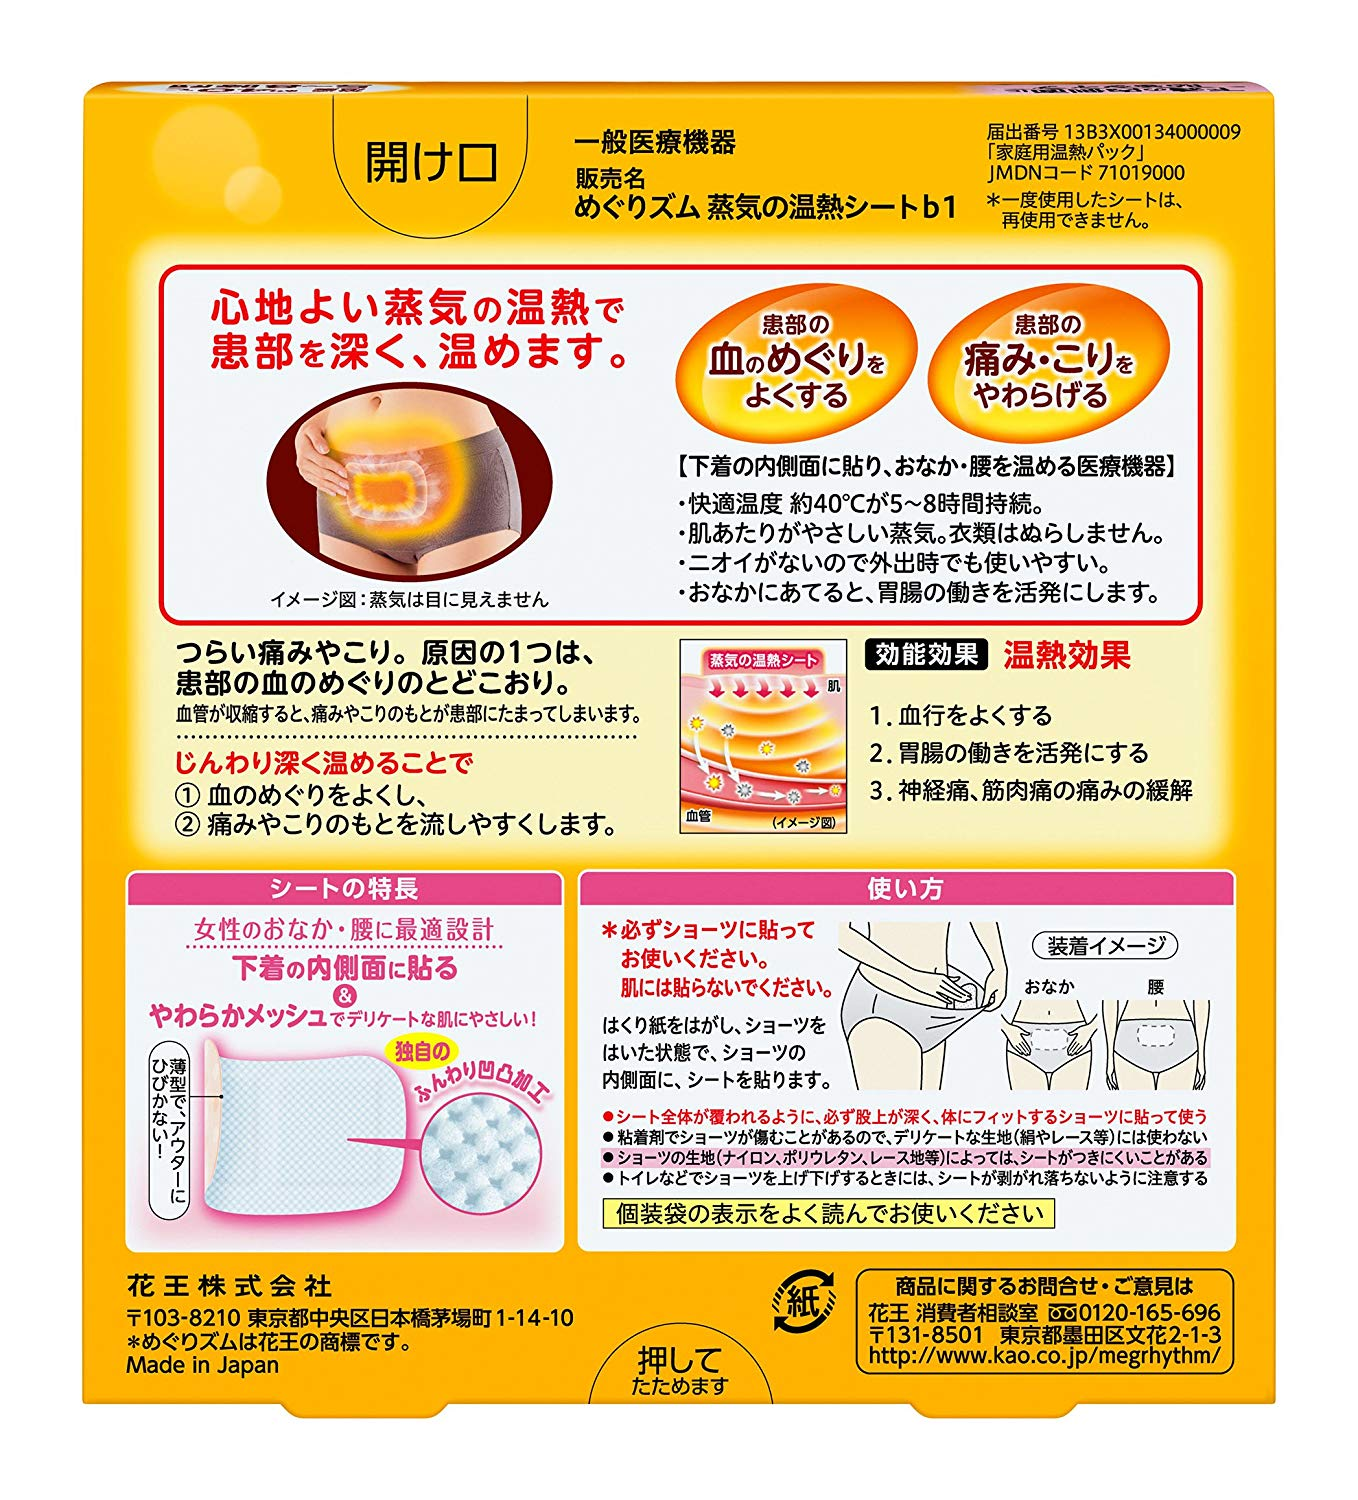 Kao MEGURISM | Health Care | Steam Warm Sheets (Put On Underwear) x 5